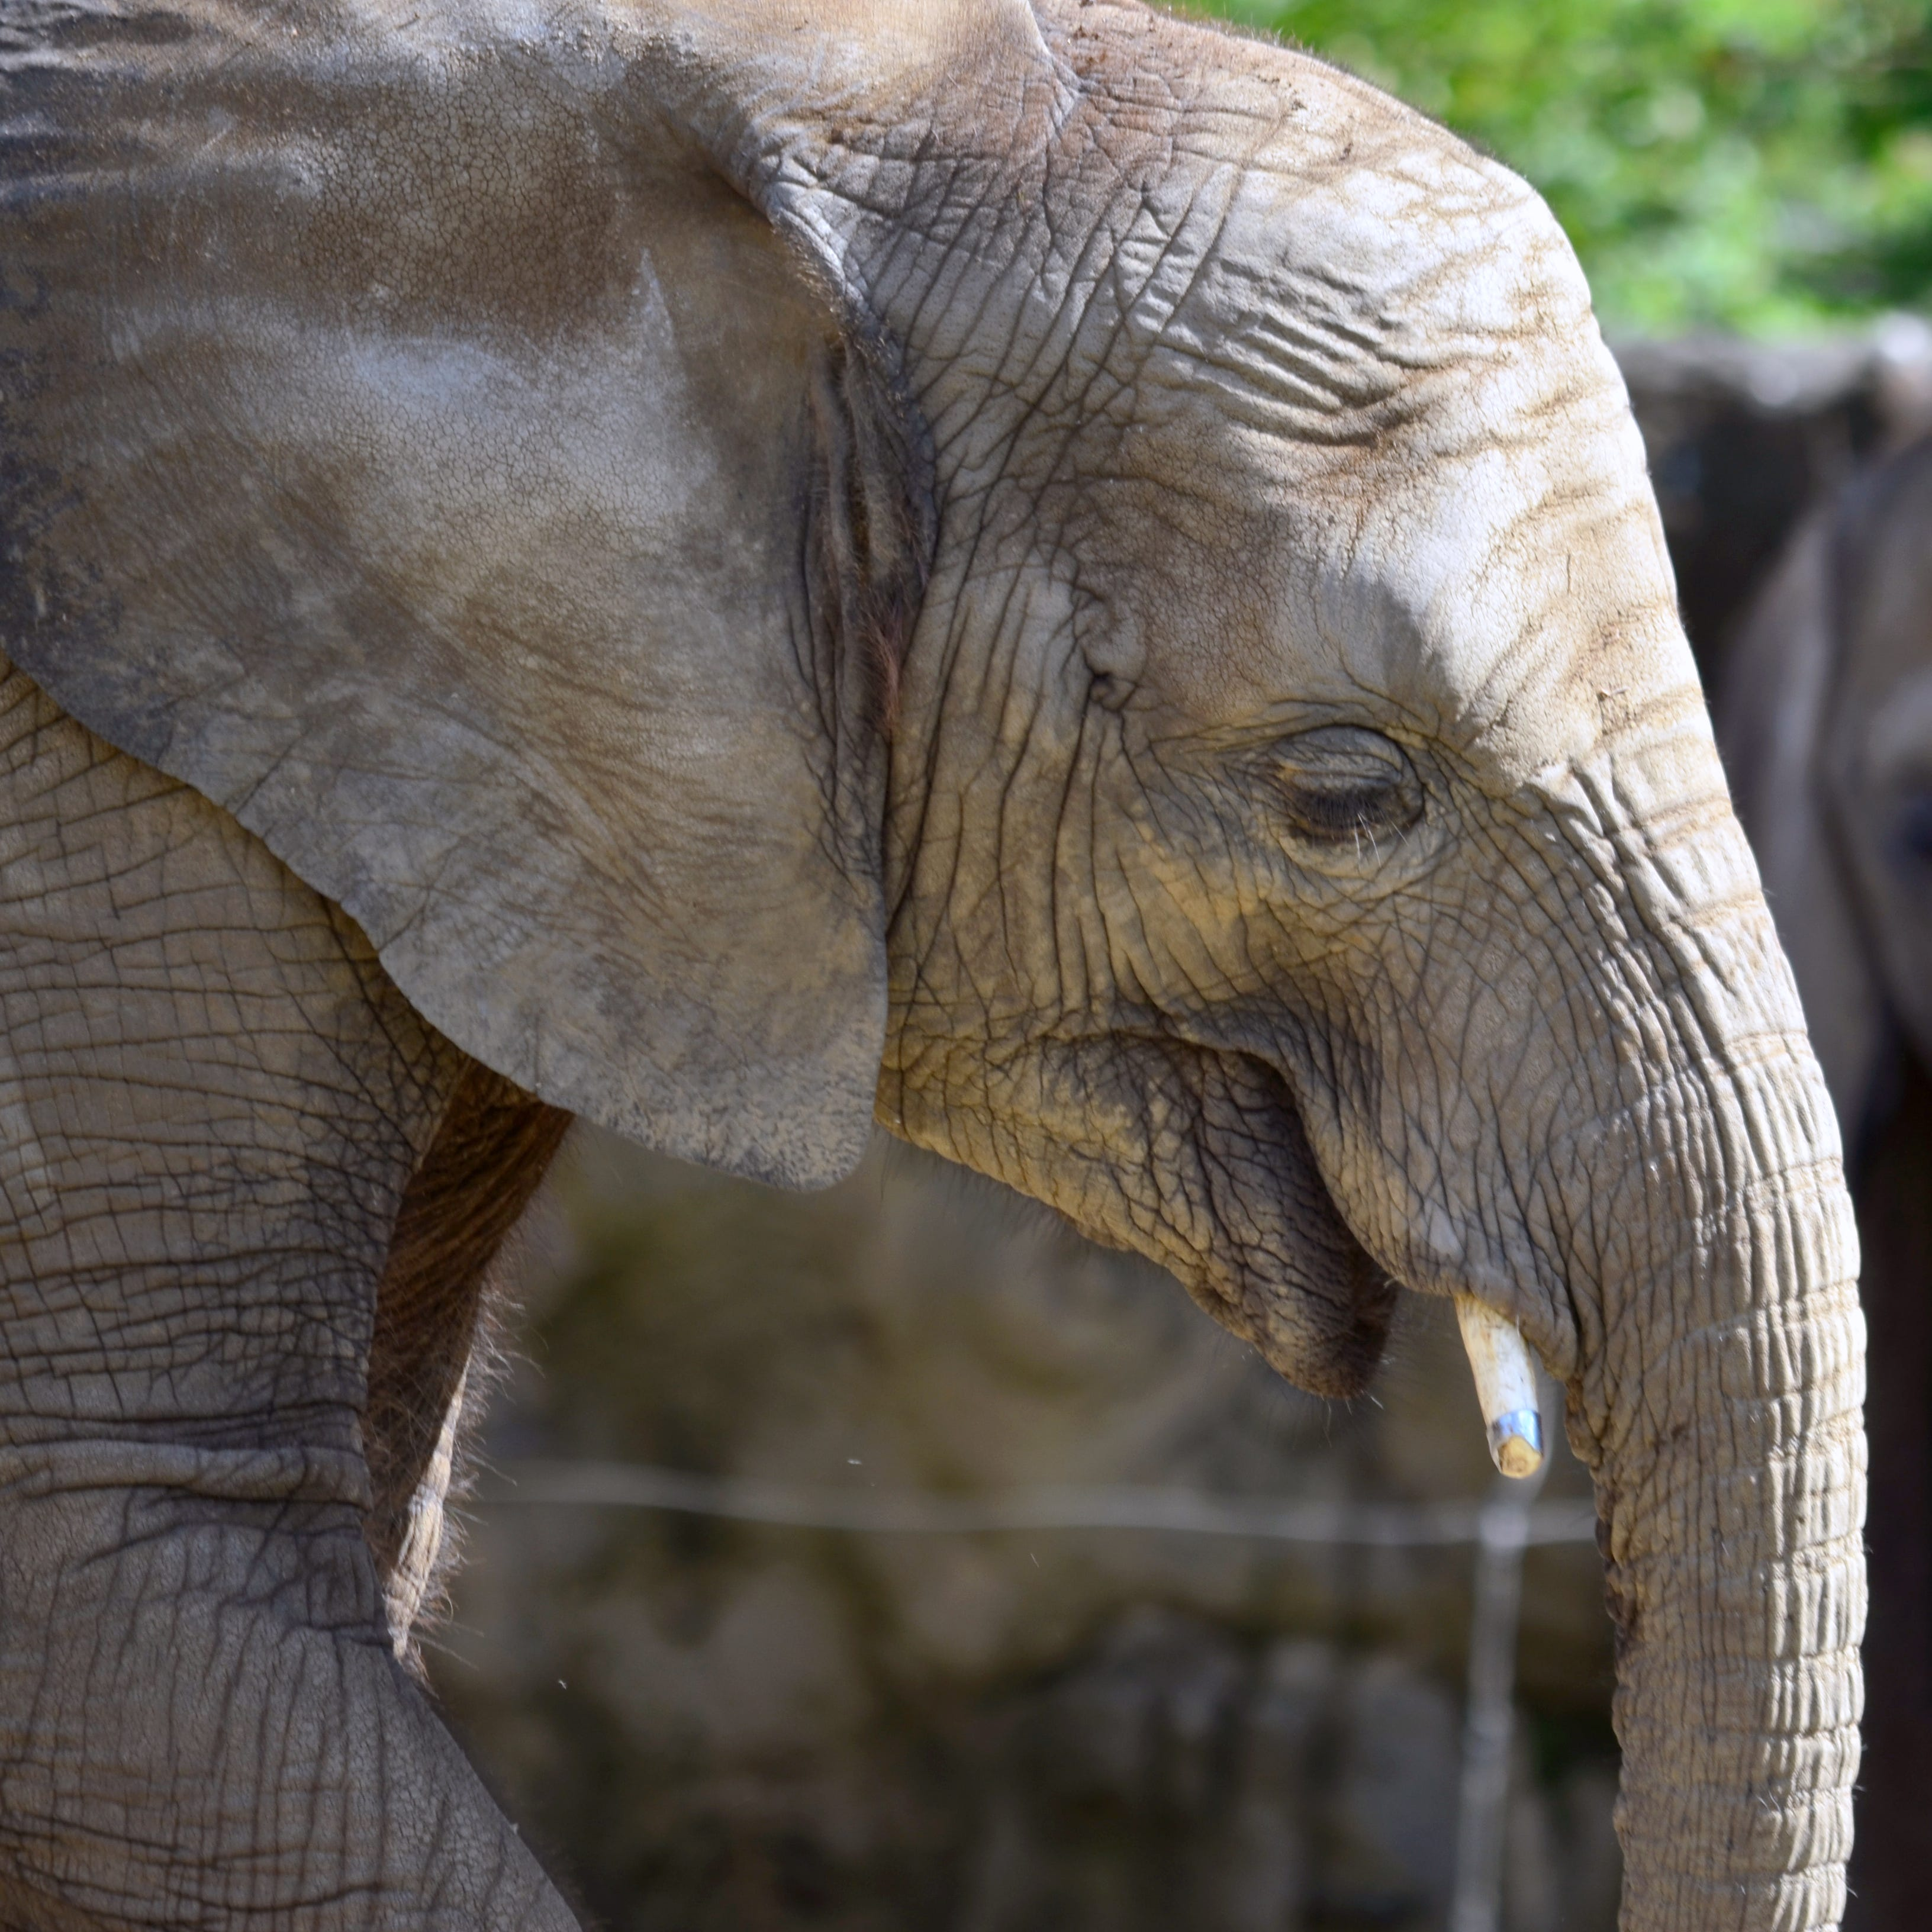 A rare virus has killed 2 Indianapolis Zoo elephants this year. Now a third has it.